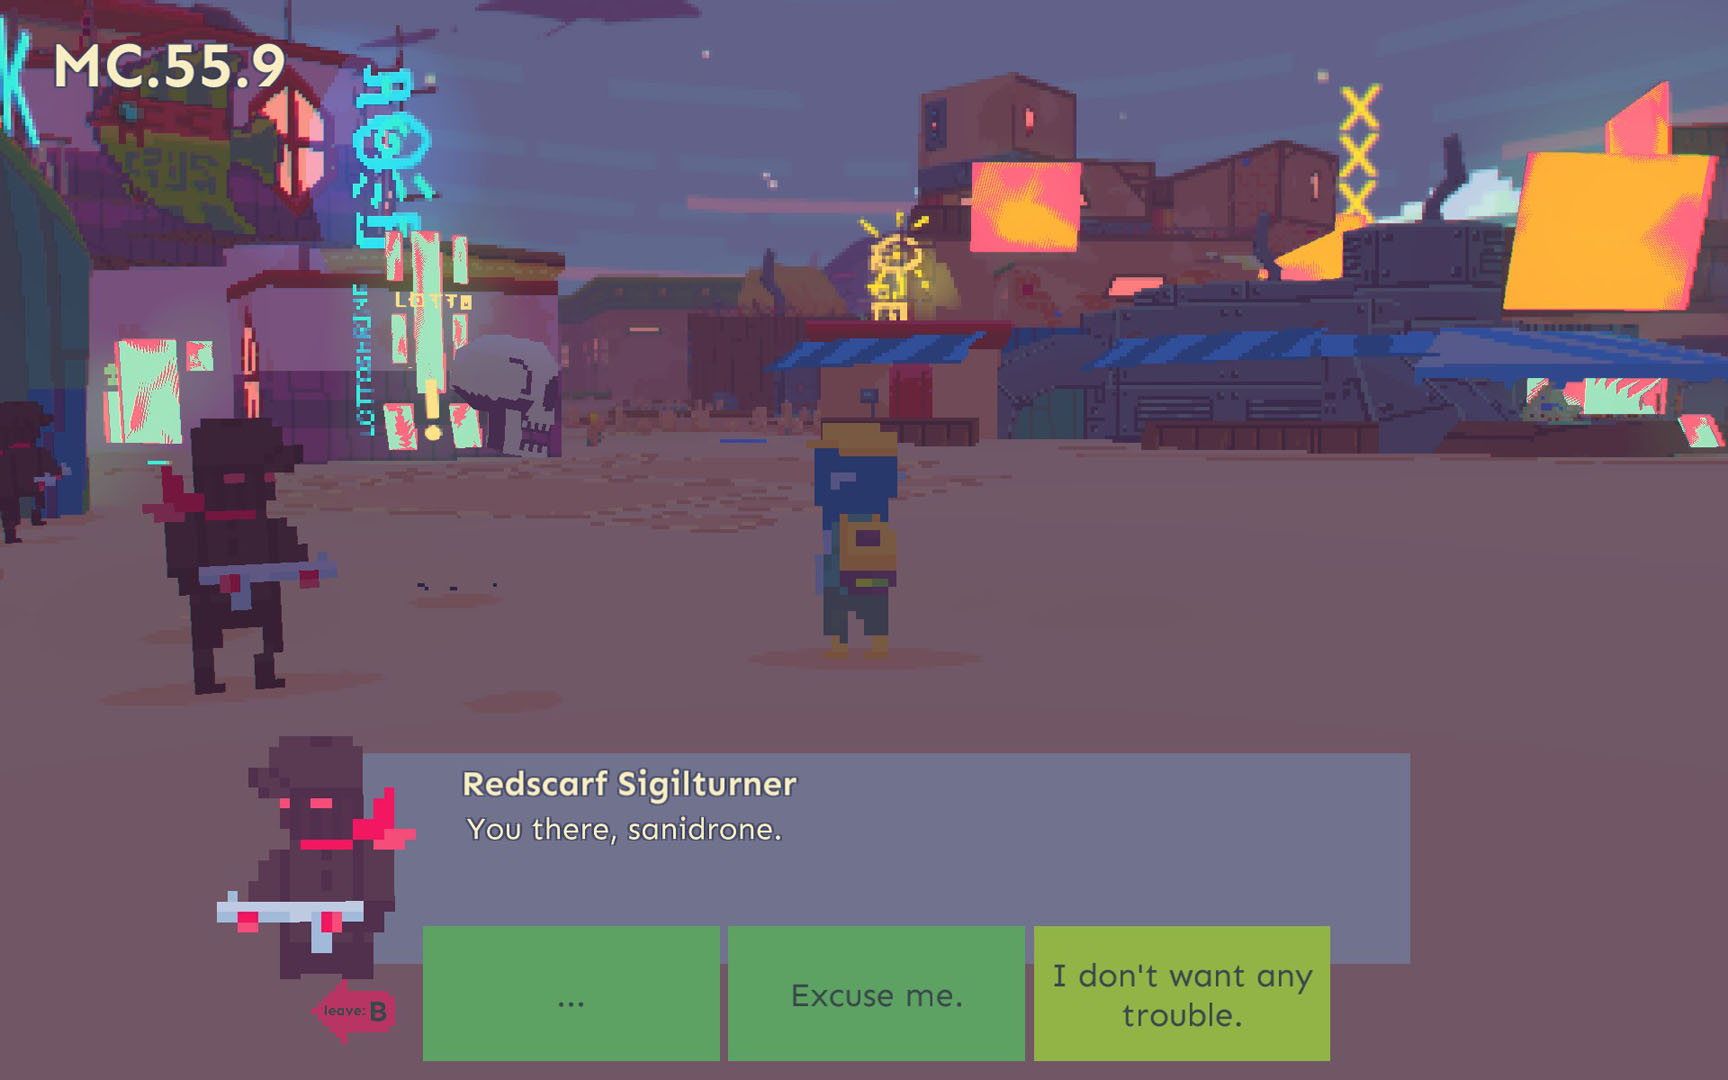 professional janitor diaries of a spaceport janitor the review ...